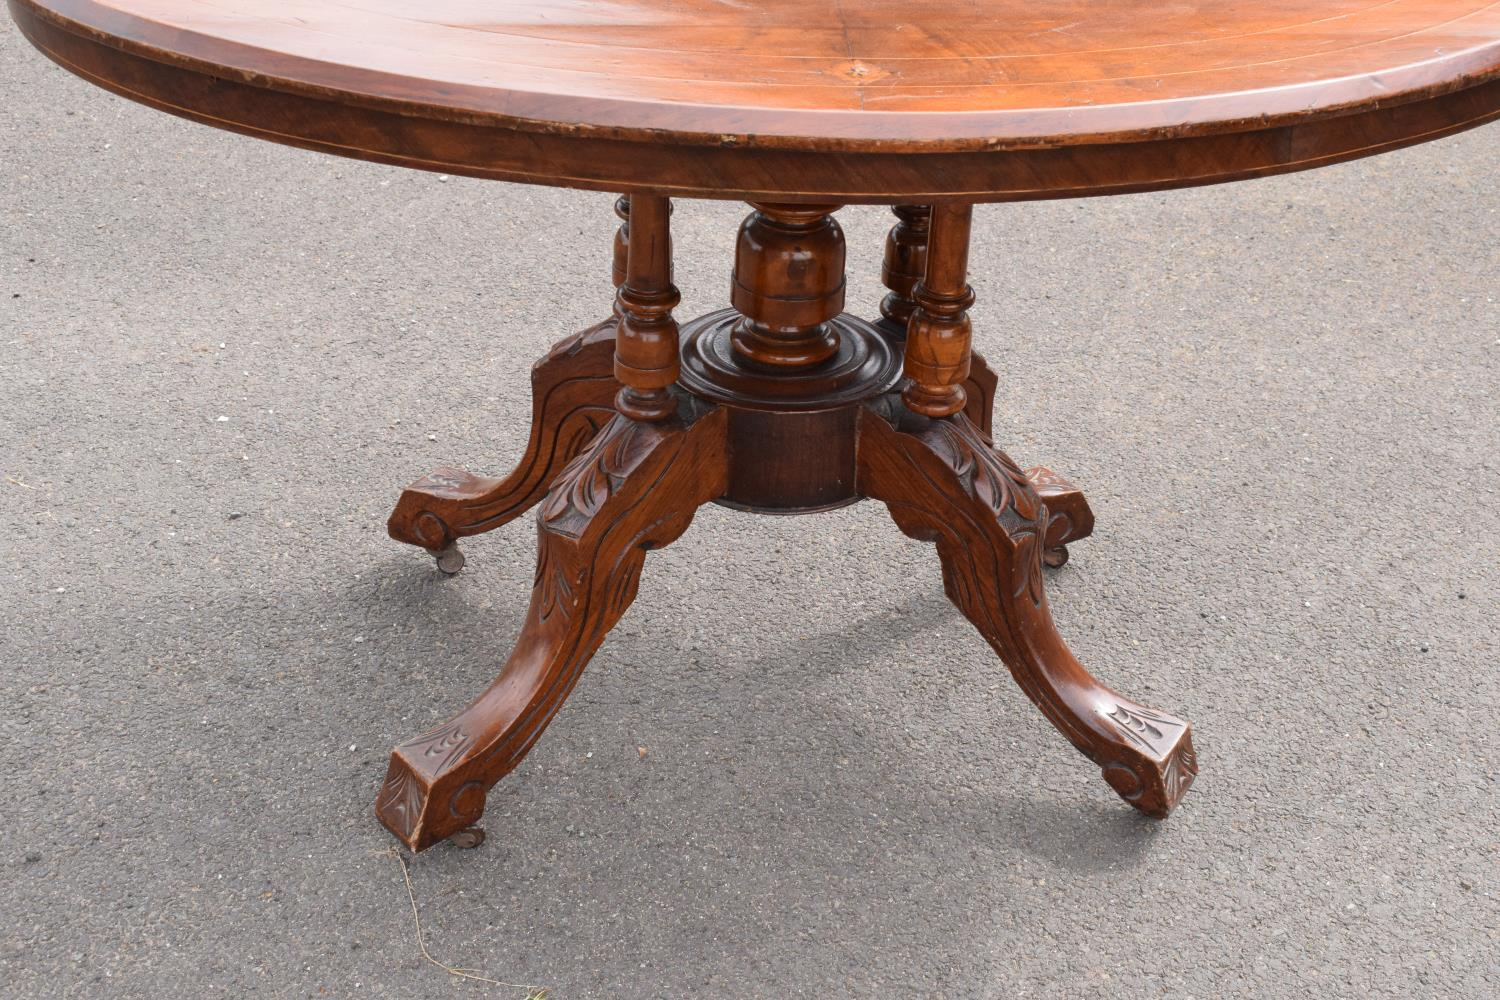 Late 19th century Victorian walnut veneered table with tilt top movement. In good condition with - Image 5 of 7